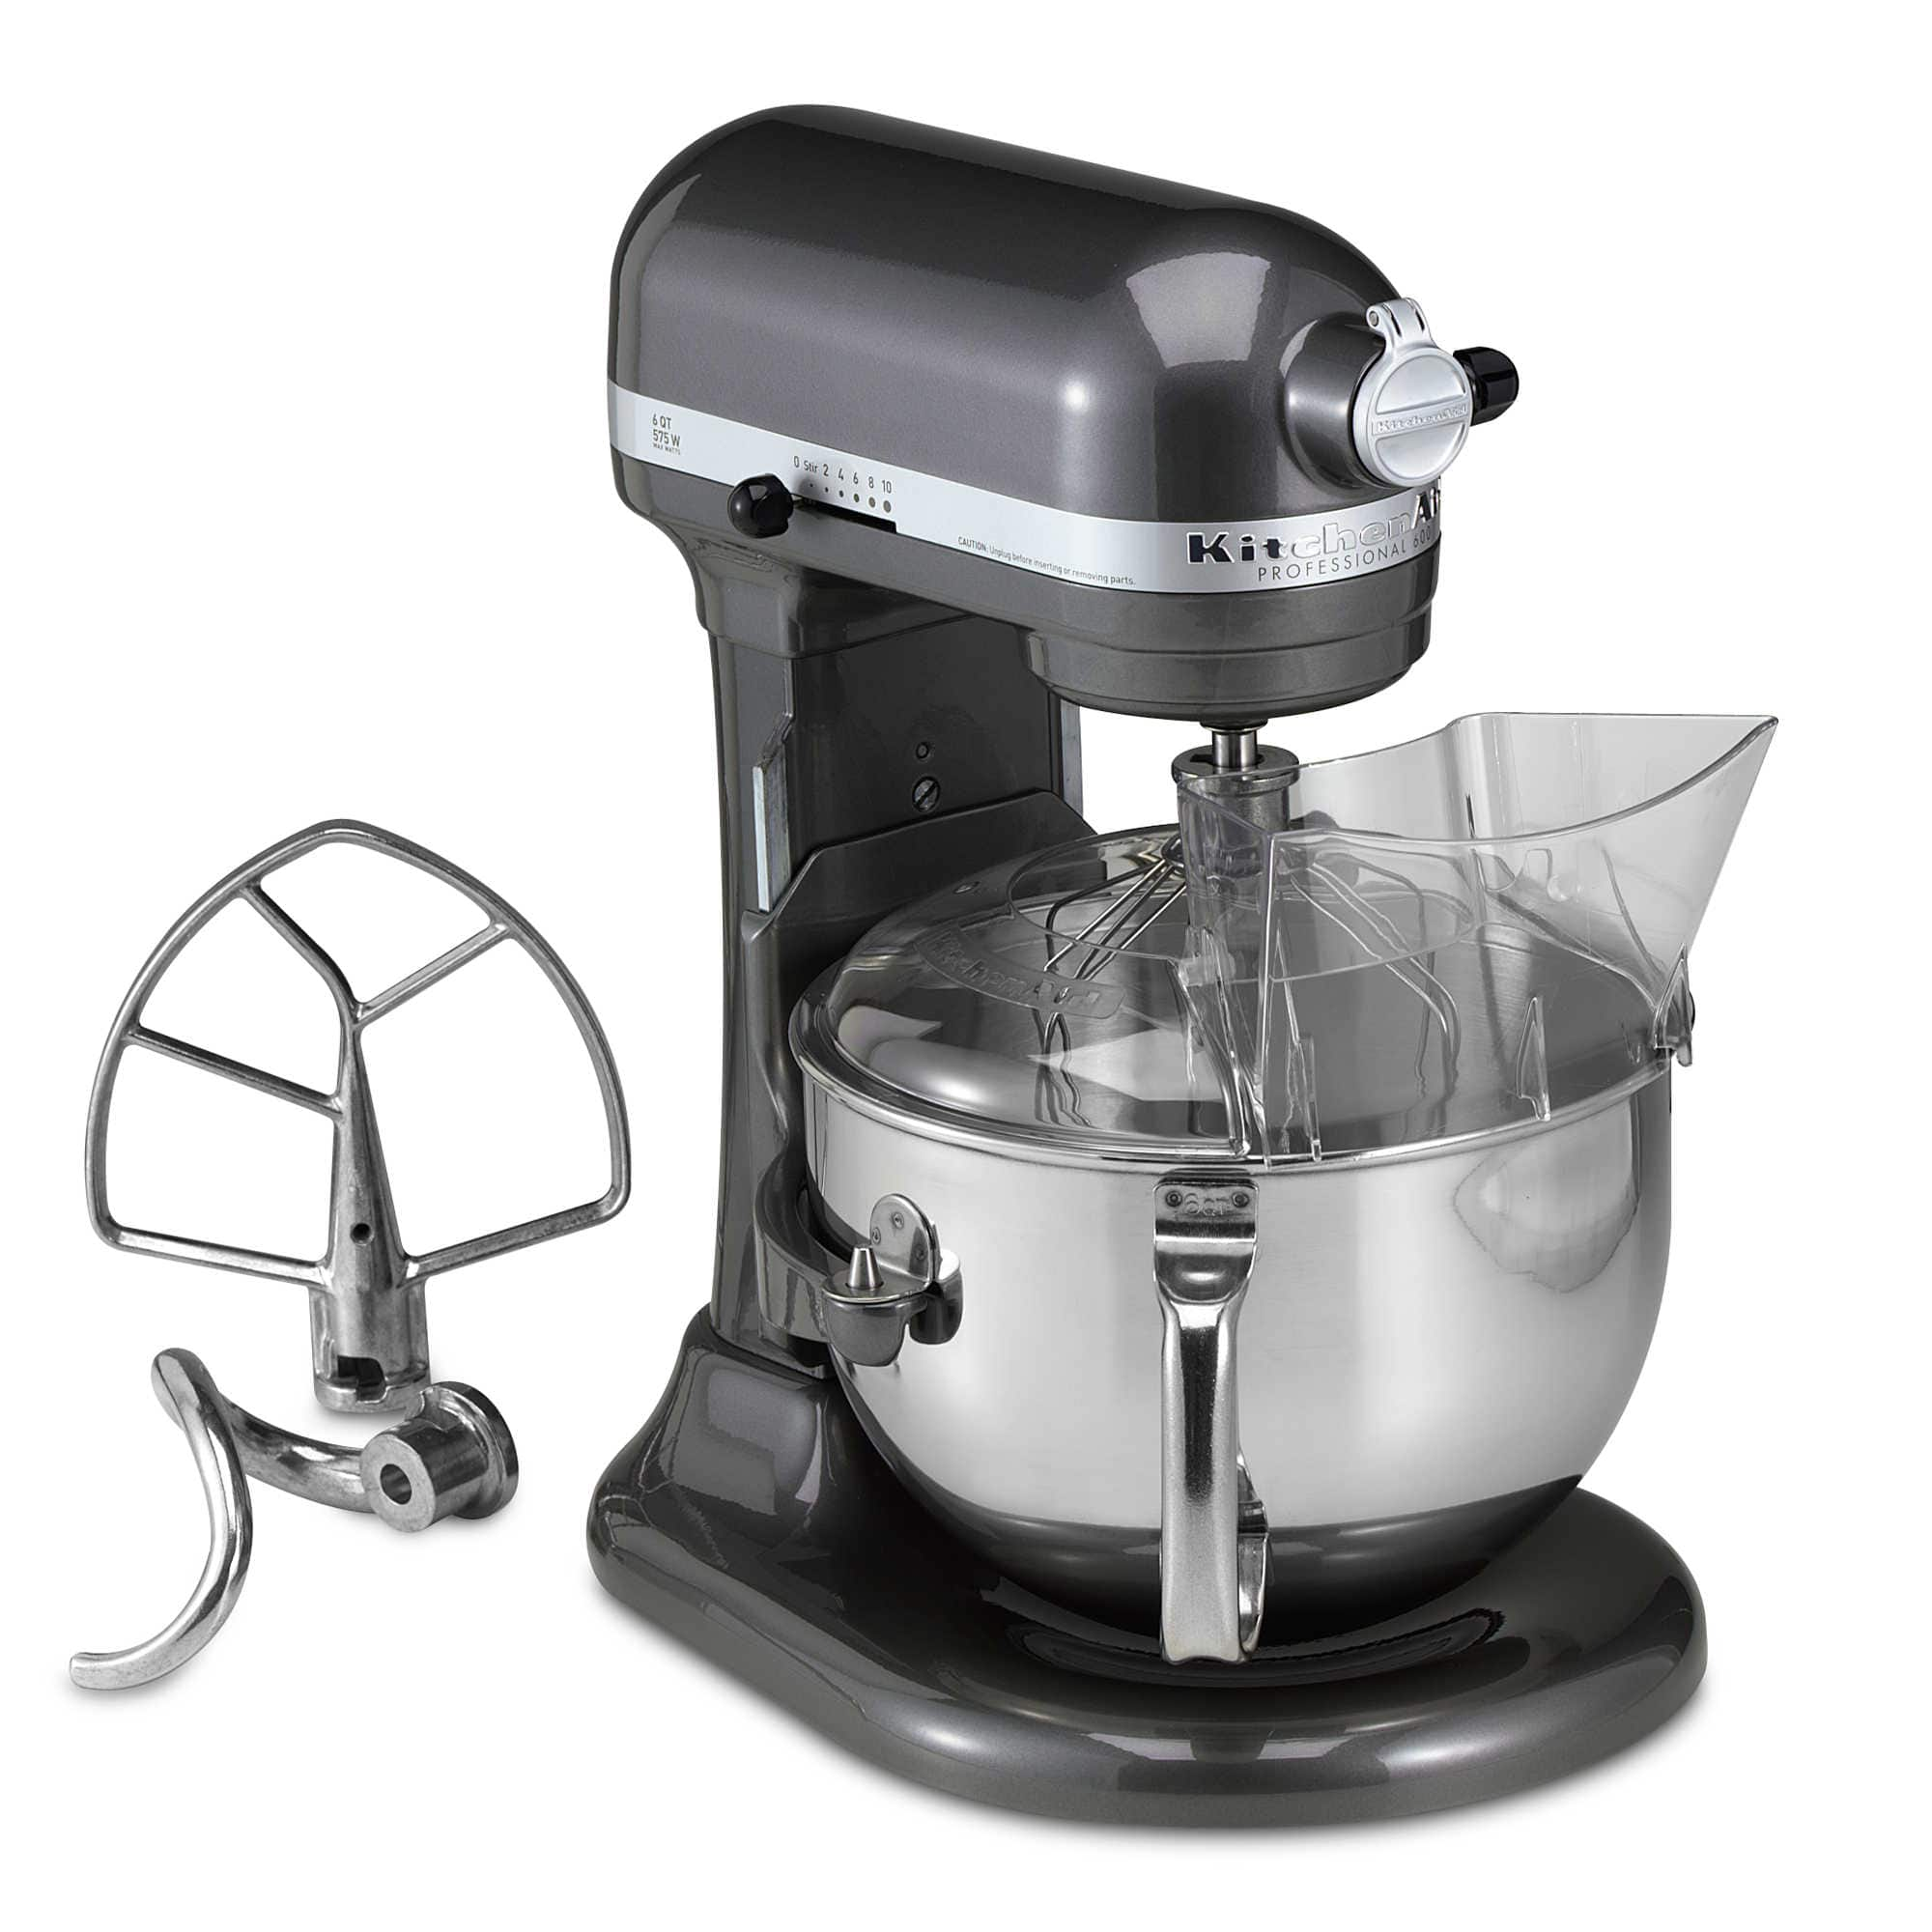 KitchenAid Professional 600 6 Quart Stand Mixer - $349.99 - $70 coupon = $279.98